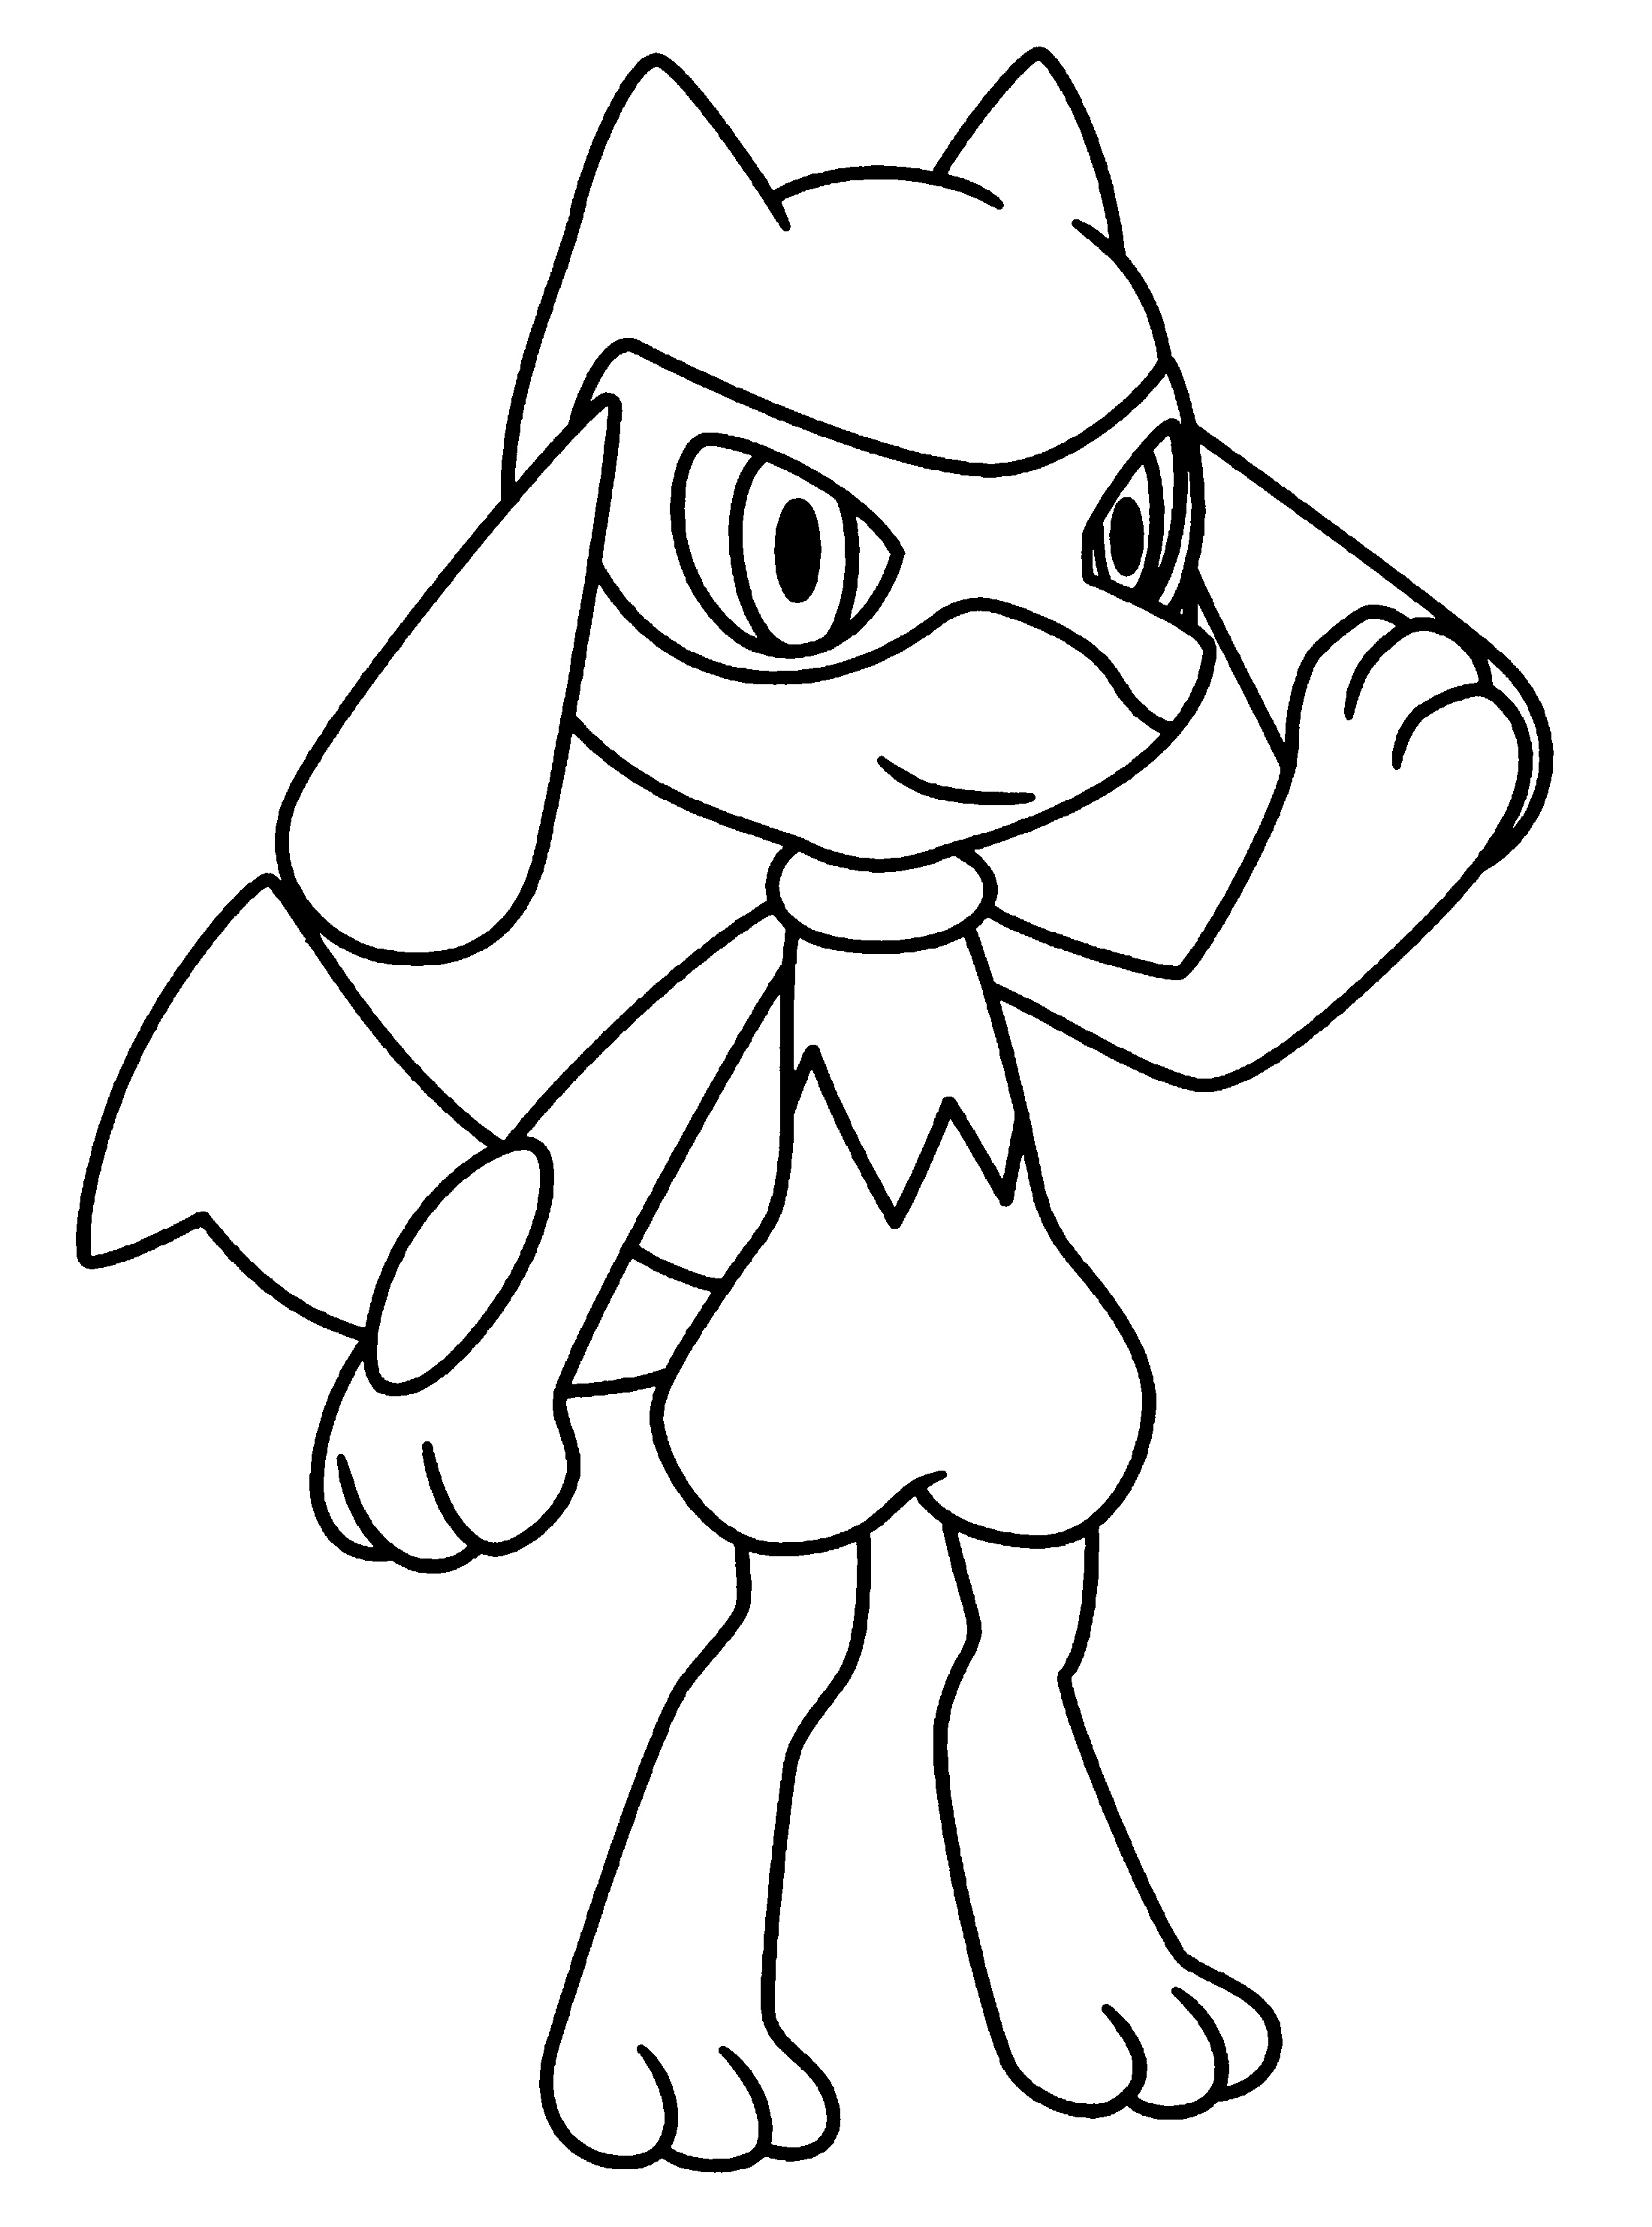 Lucario Coloring Page For Kids